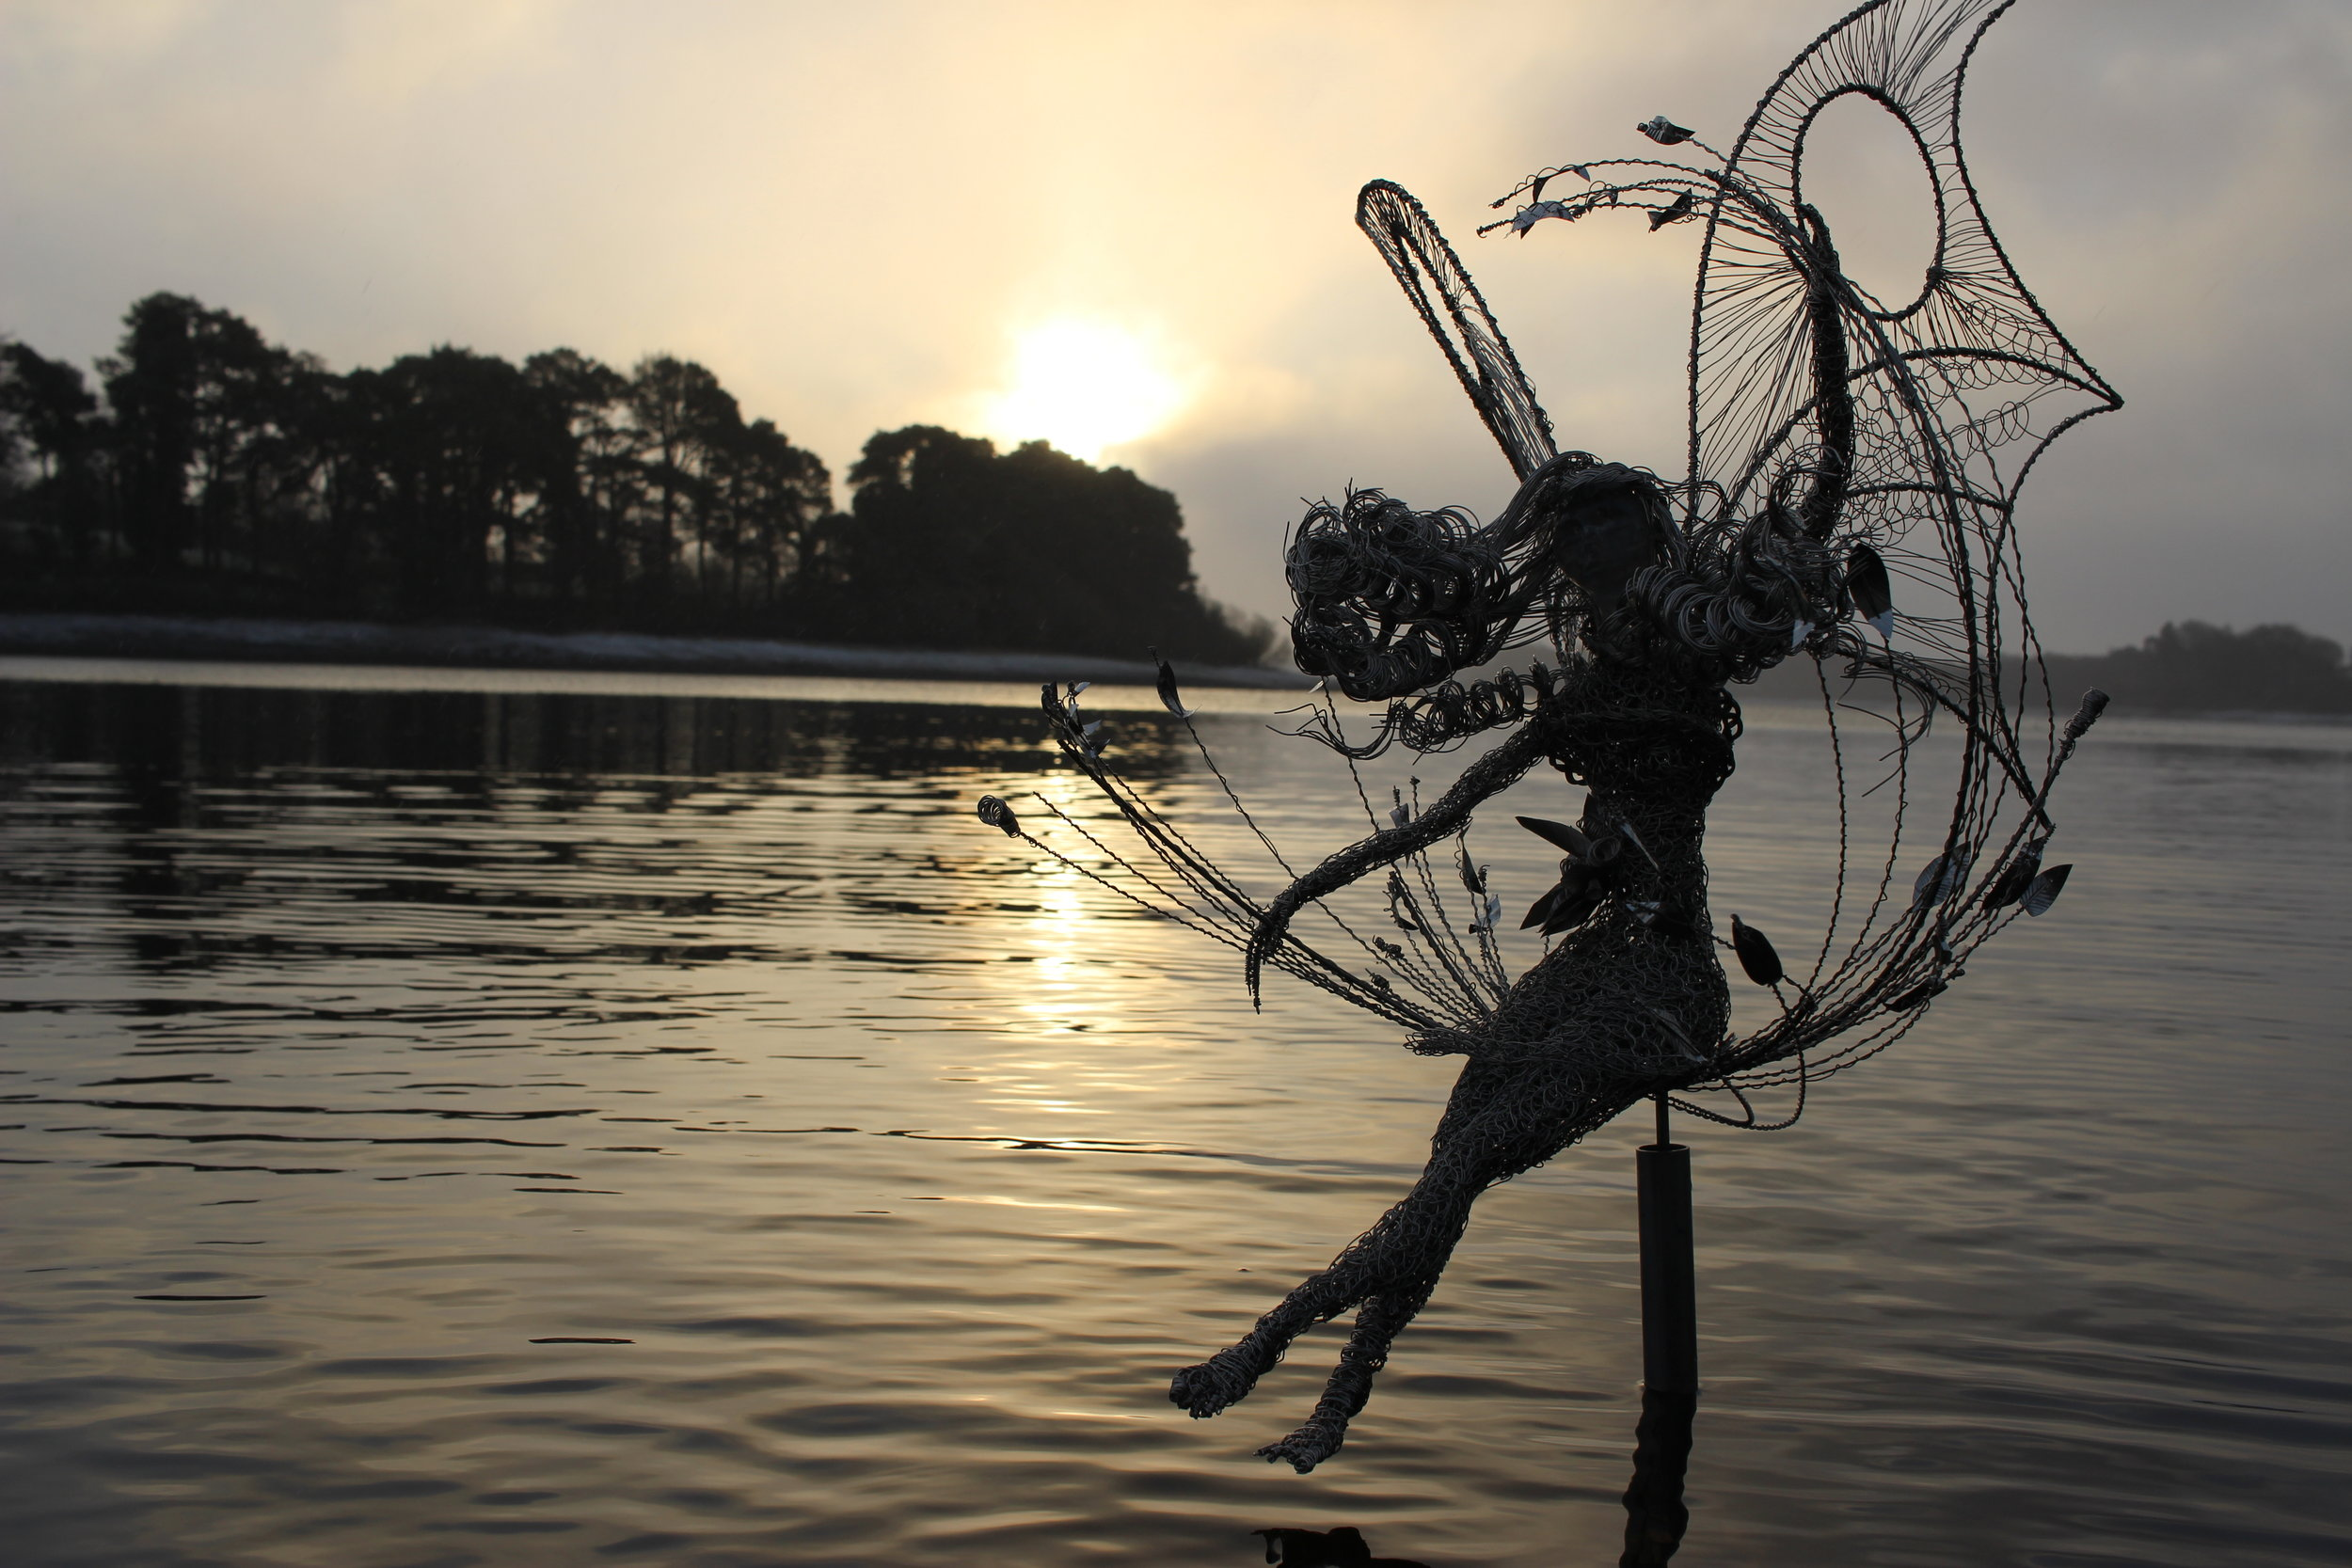 HR fairy spinning on the lake-1.JPG